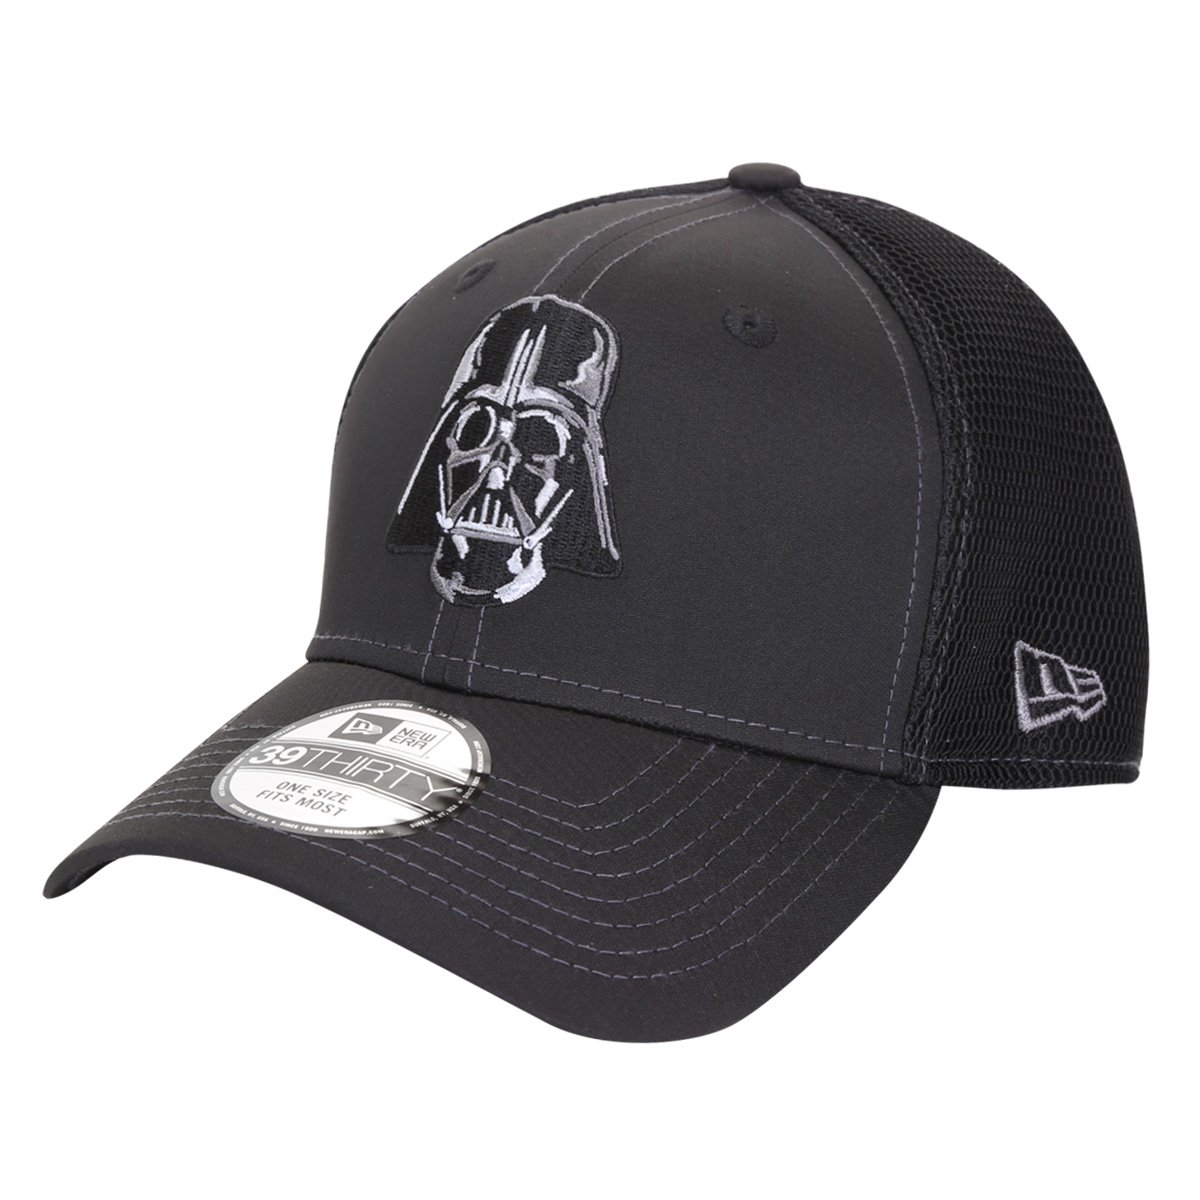 Boné New Era Aba Curva Star Wars Darth Vader